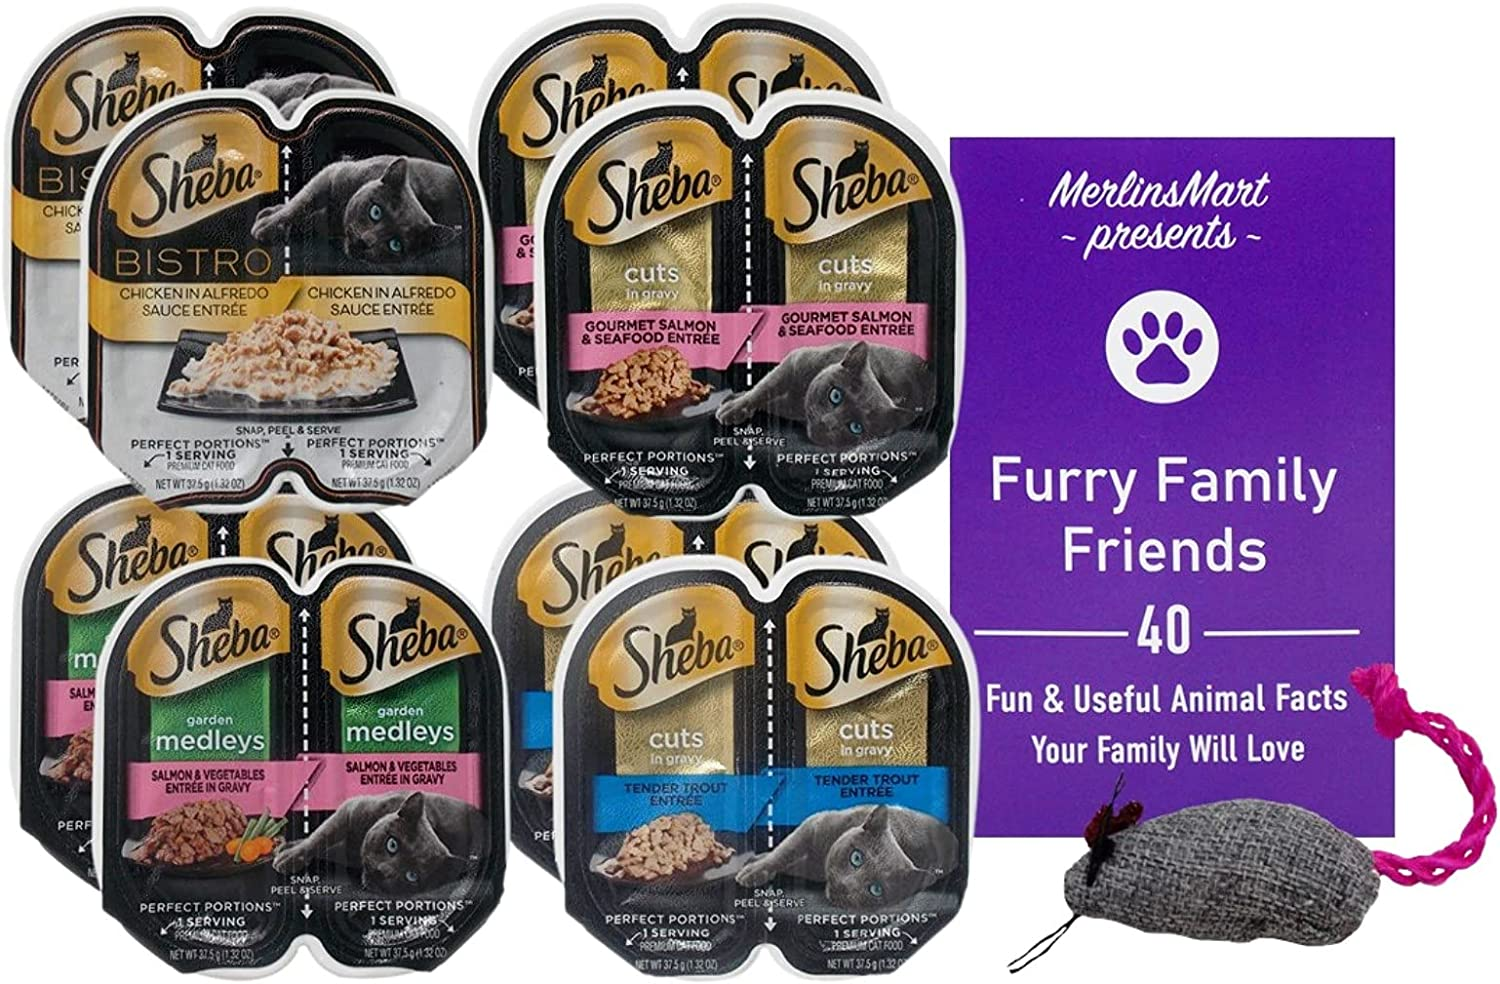 Sheba Perfect Portions Cuts in Gravy Bistro Medleys Cat Food 4 Flavor 8 Can Variety Sampler, (2) Each: Chicken, Salmon Seafood, Salmon, Trout (2.6 Ounces) Plus Catnip Toy and Fun Facts Booklet Bundle